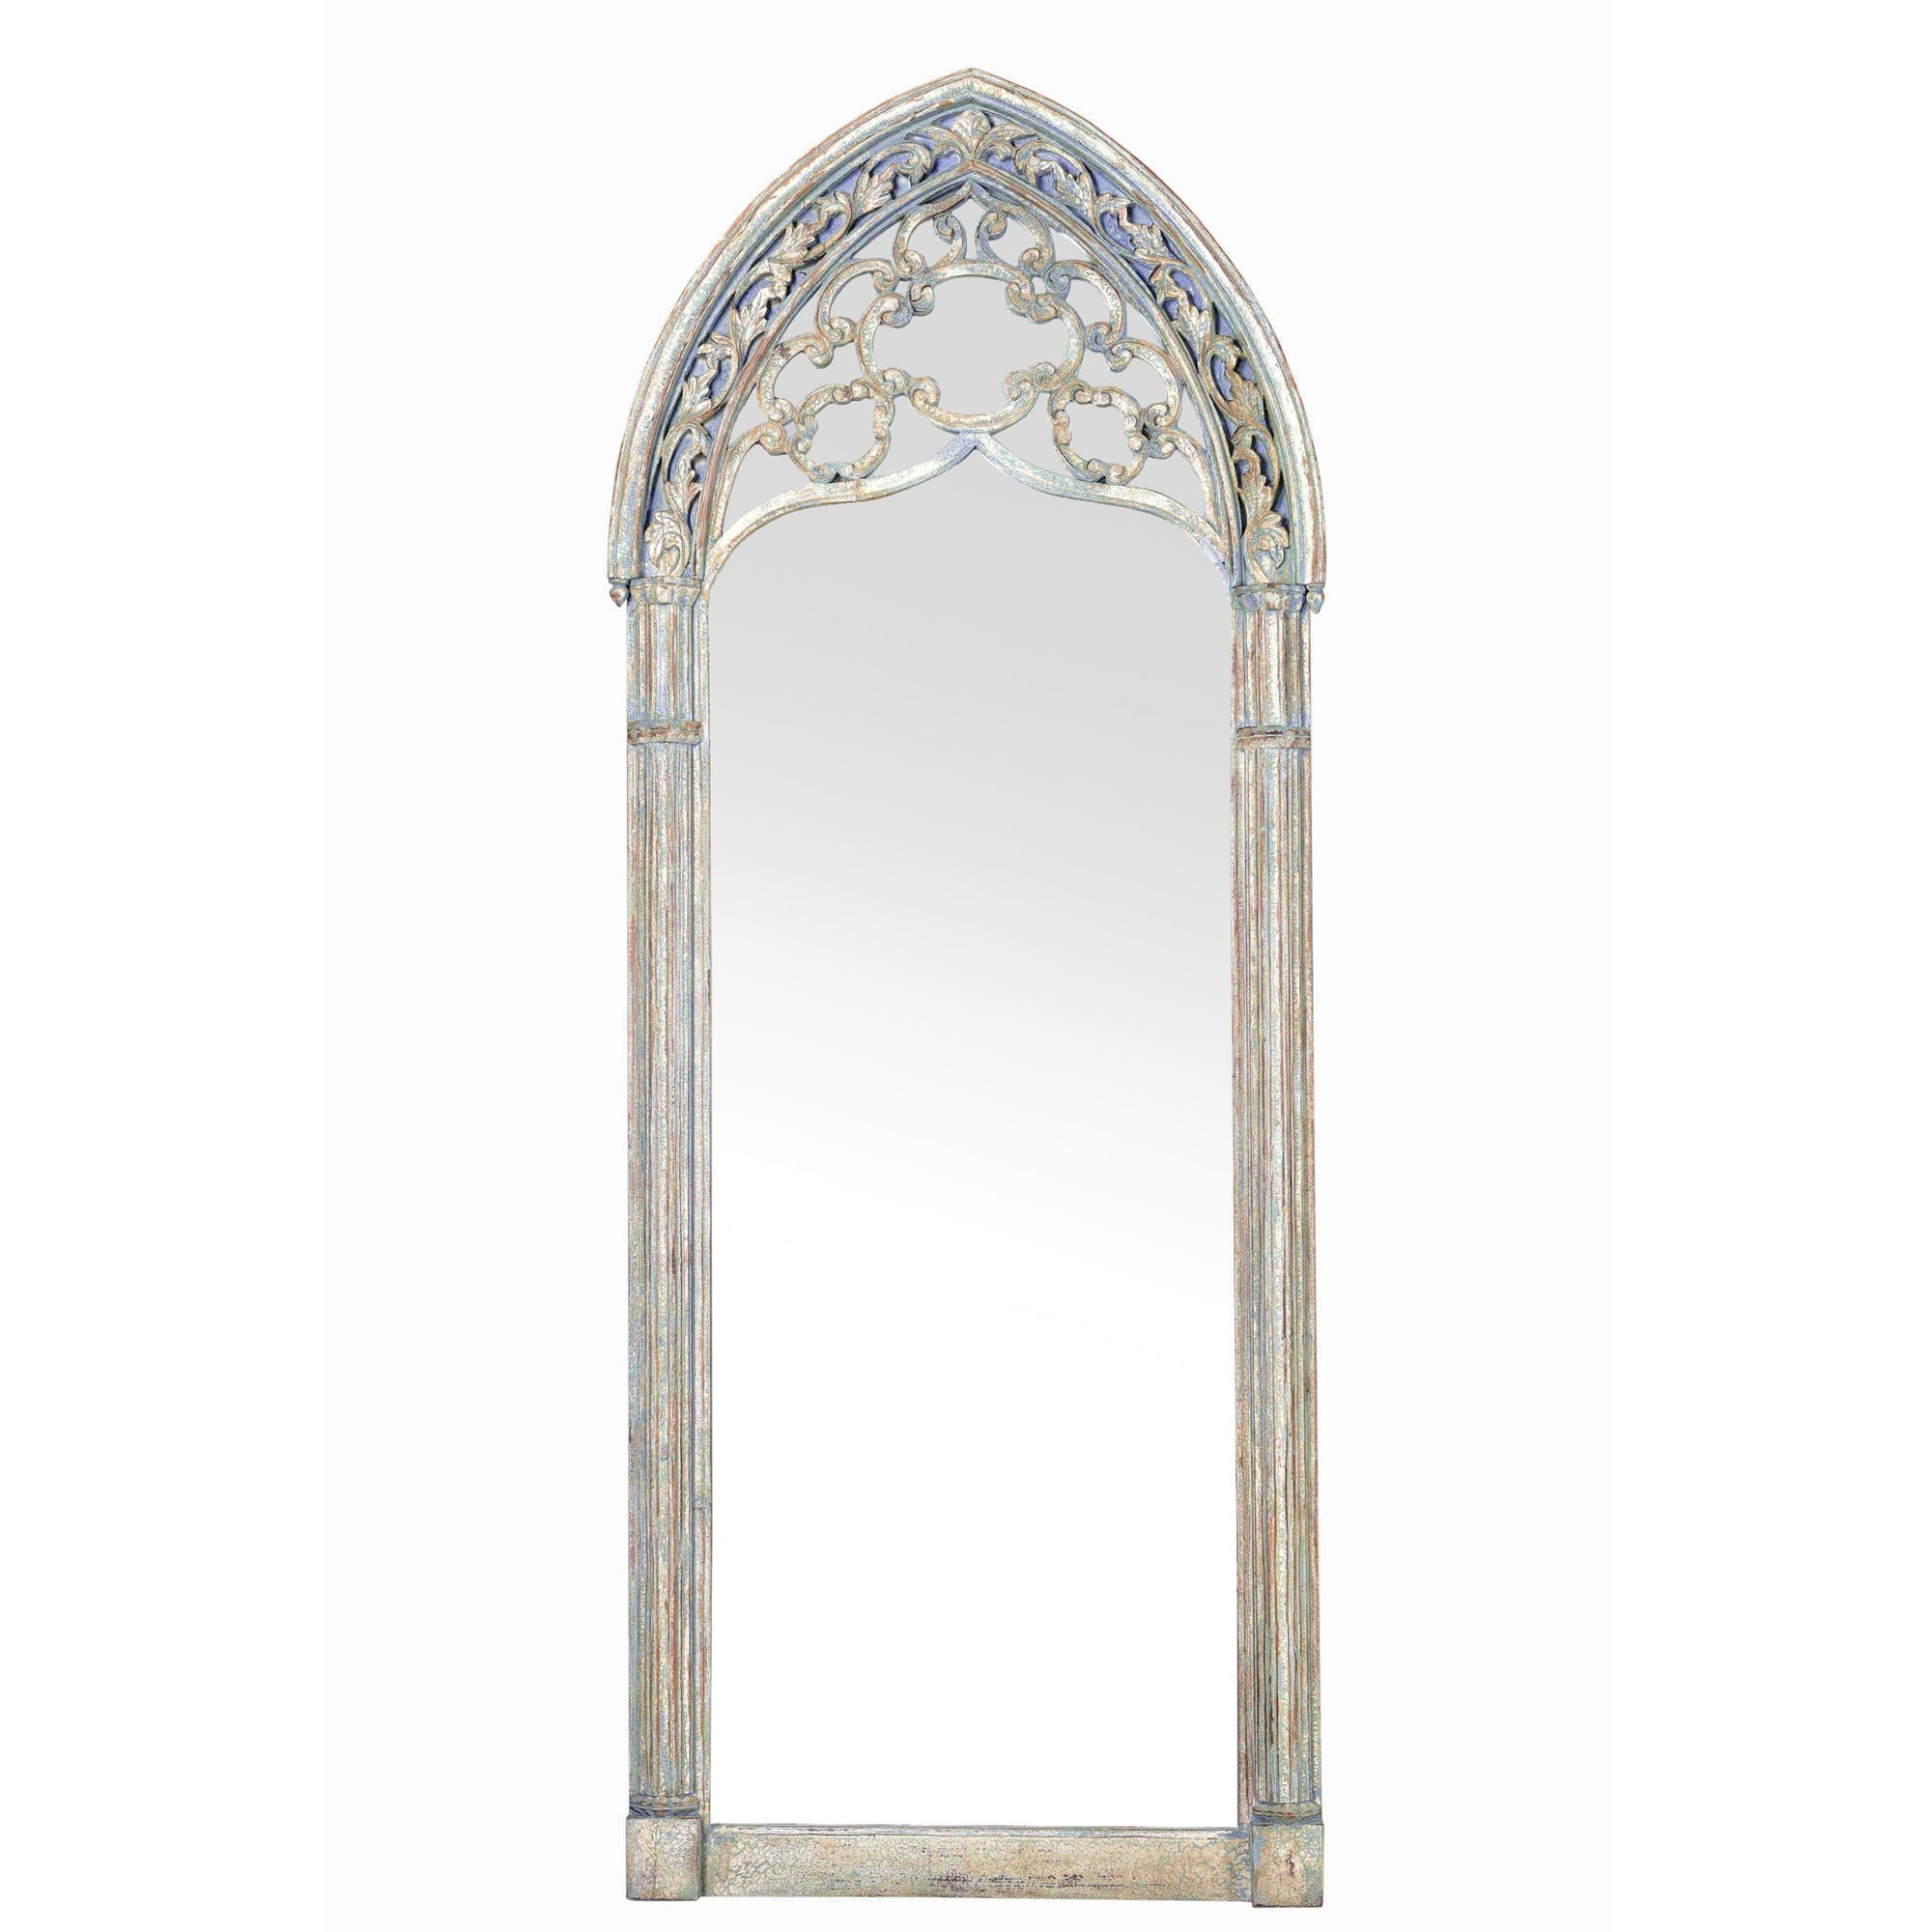 Gothic Style Full Length Floor Standing Mirror - Vintage Indian Blue | Indigo Oriental Antiques